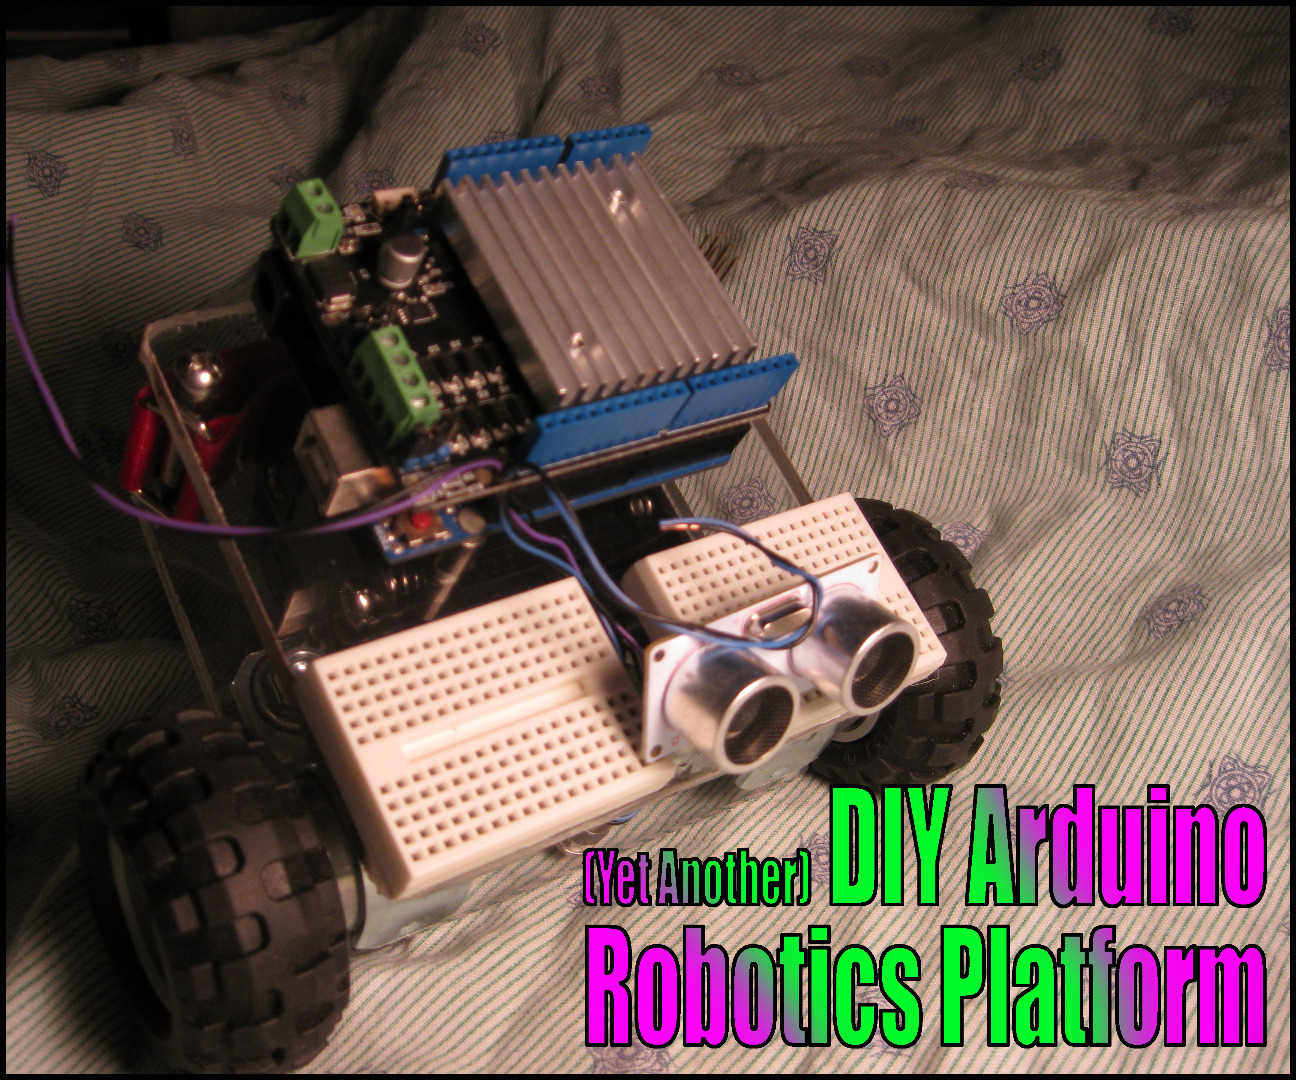 Picture of (Yet Another) DIY Arduino Robotics Platform- a Robot Chassis From Spare Parts